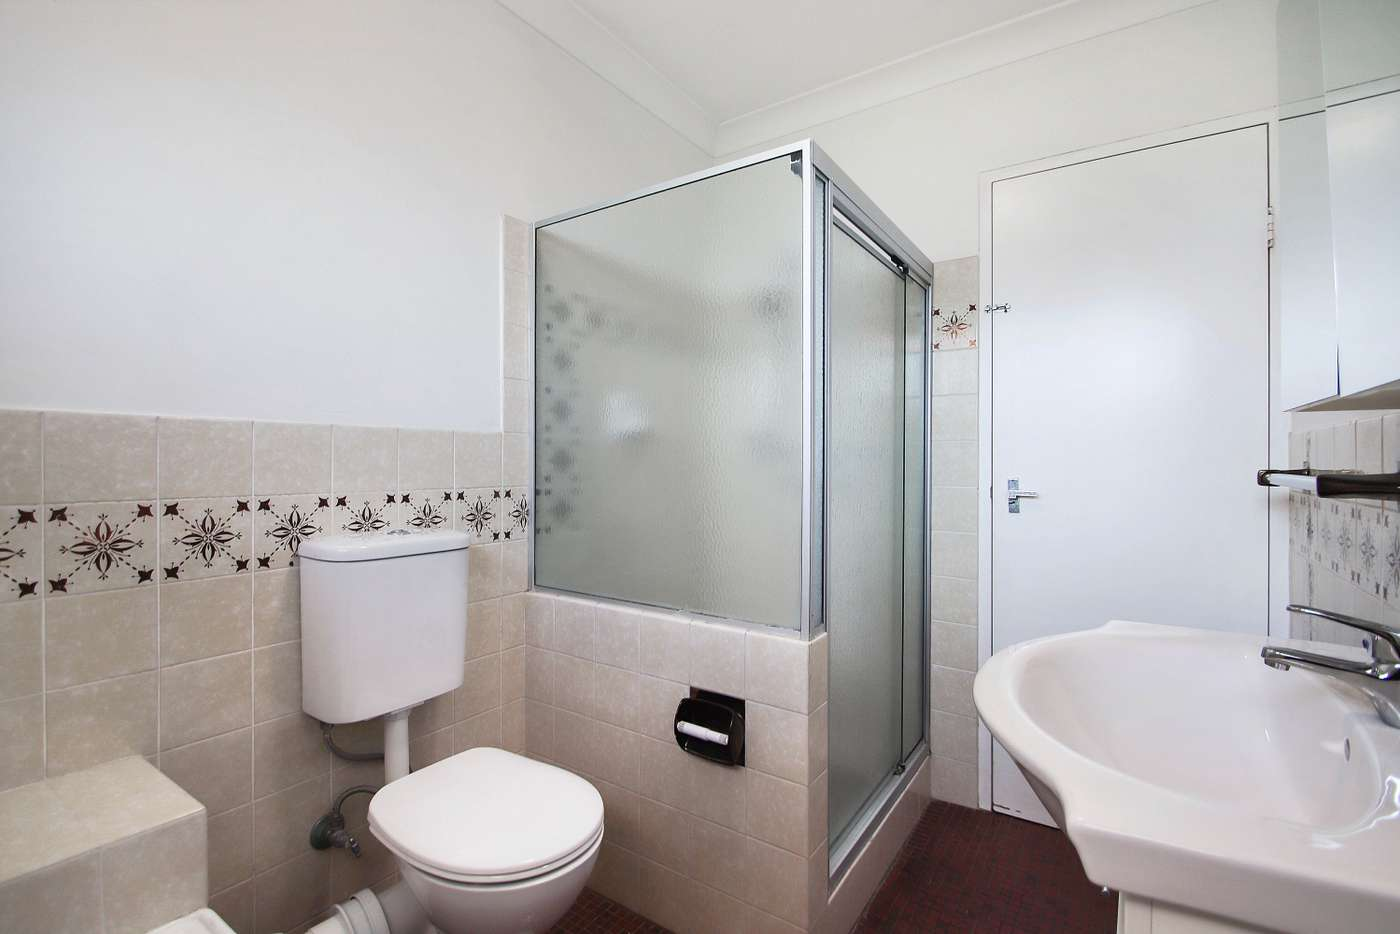 Seventh view of Homely apartment listing, 23/26-28 Orchard Street, West Ryde NSW 2114